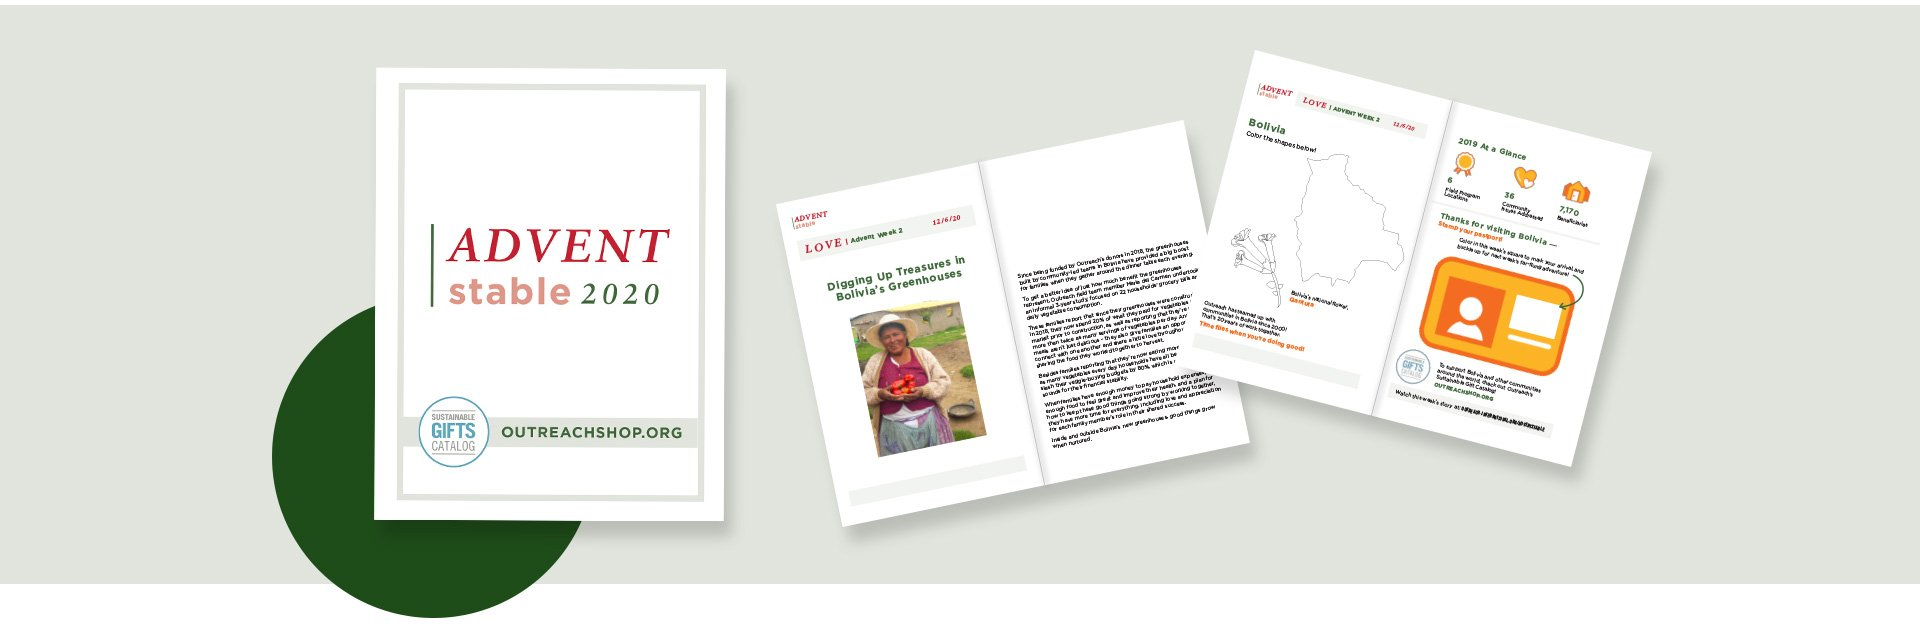 Advent Stable 2020 | Activity Booklet